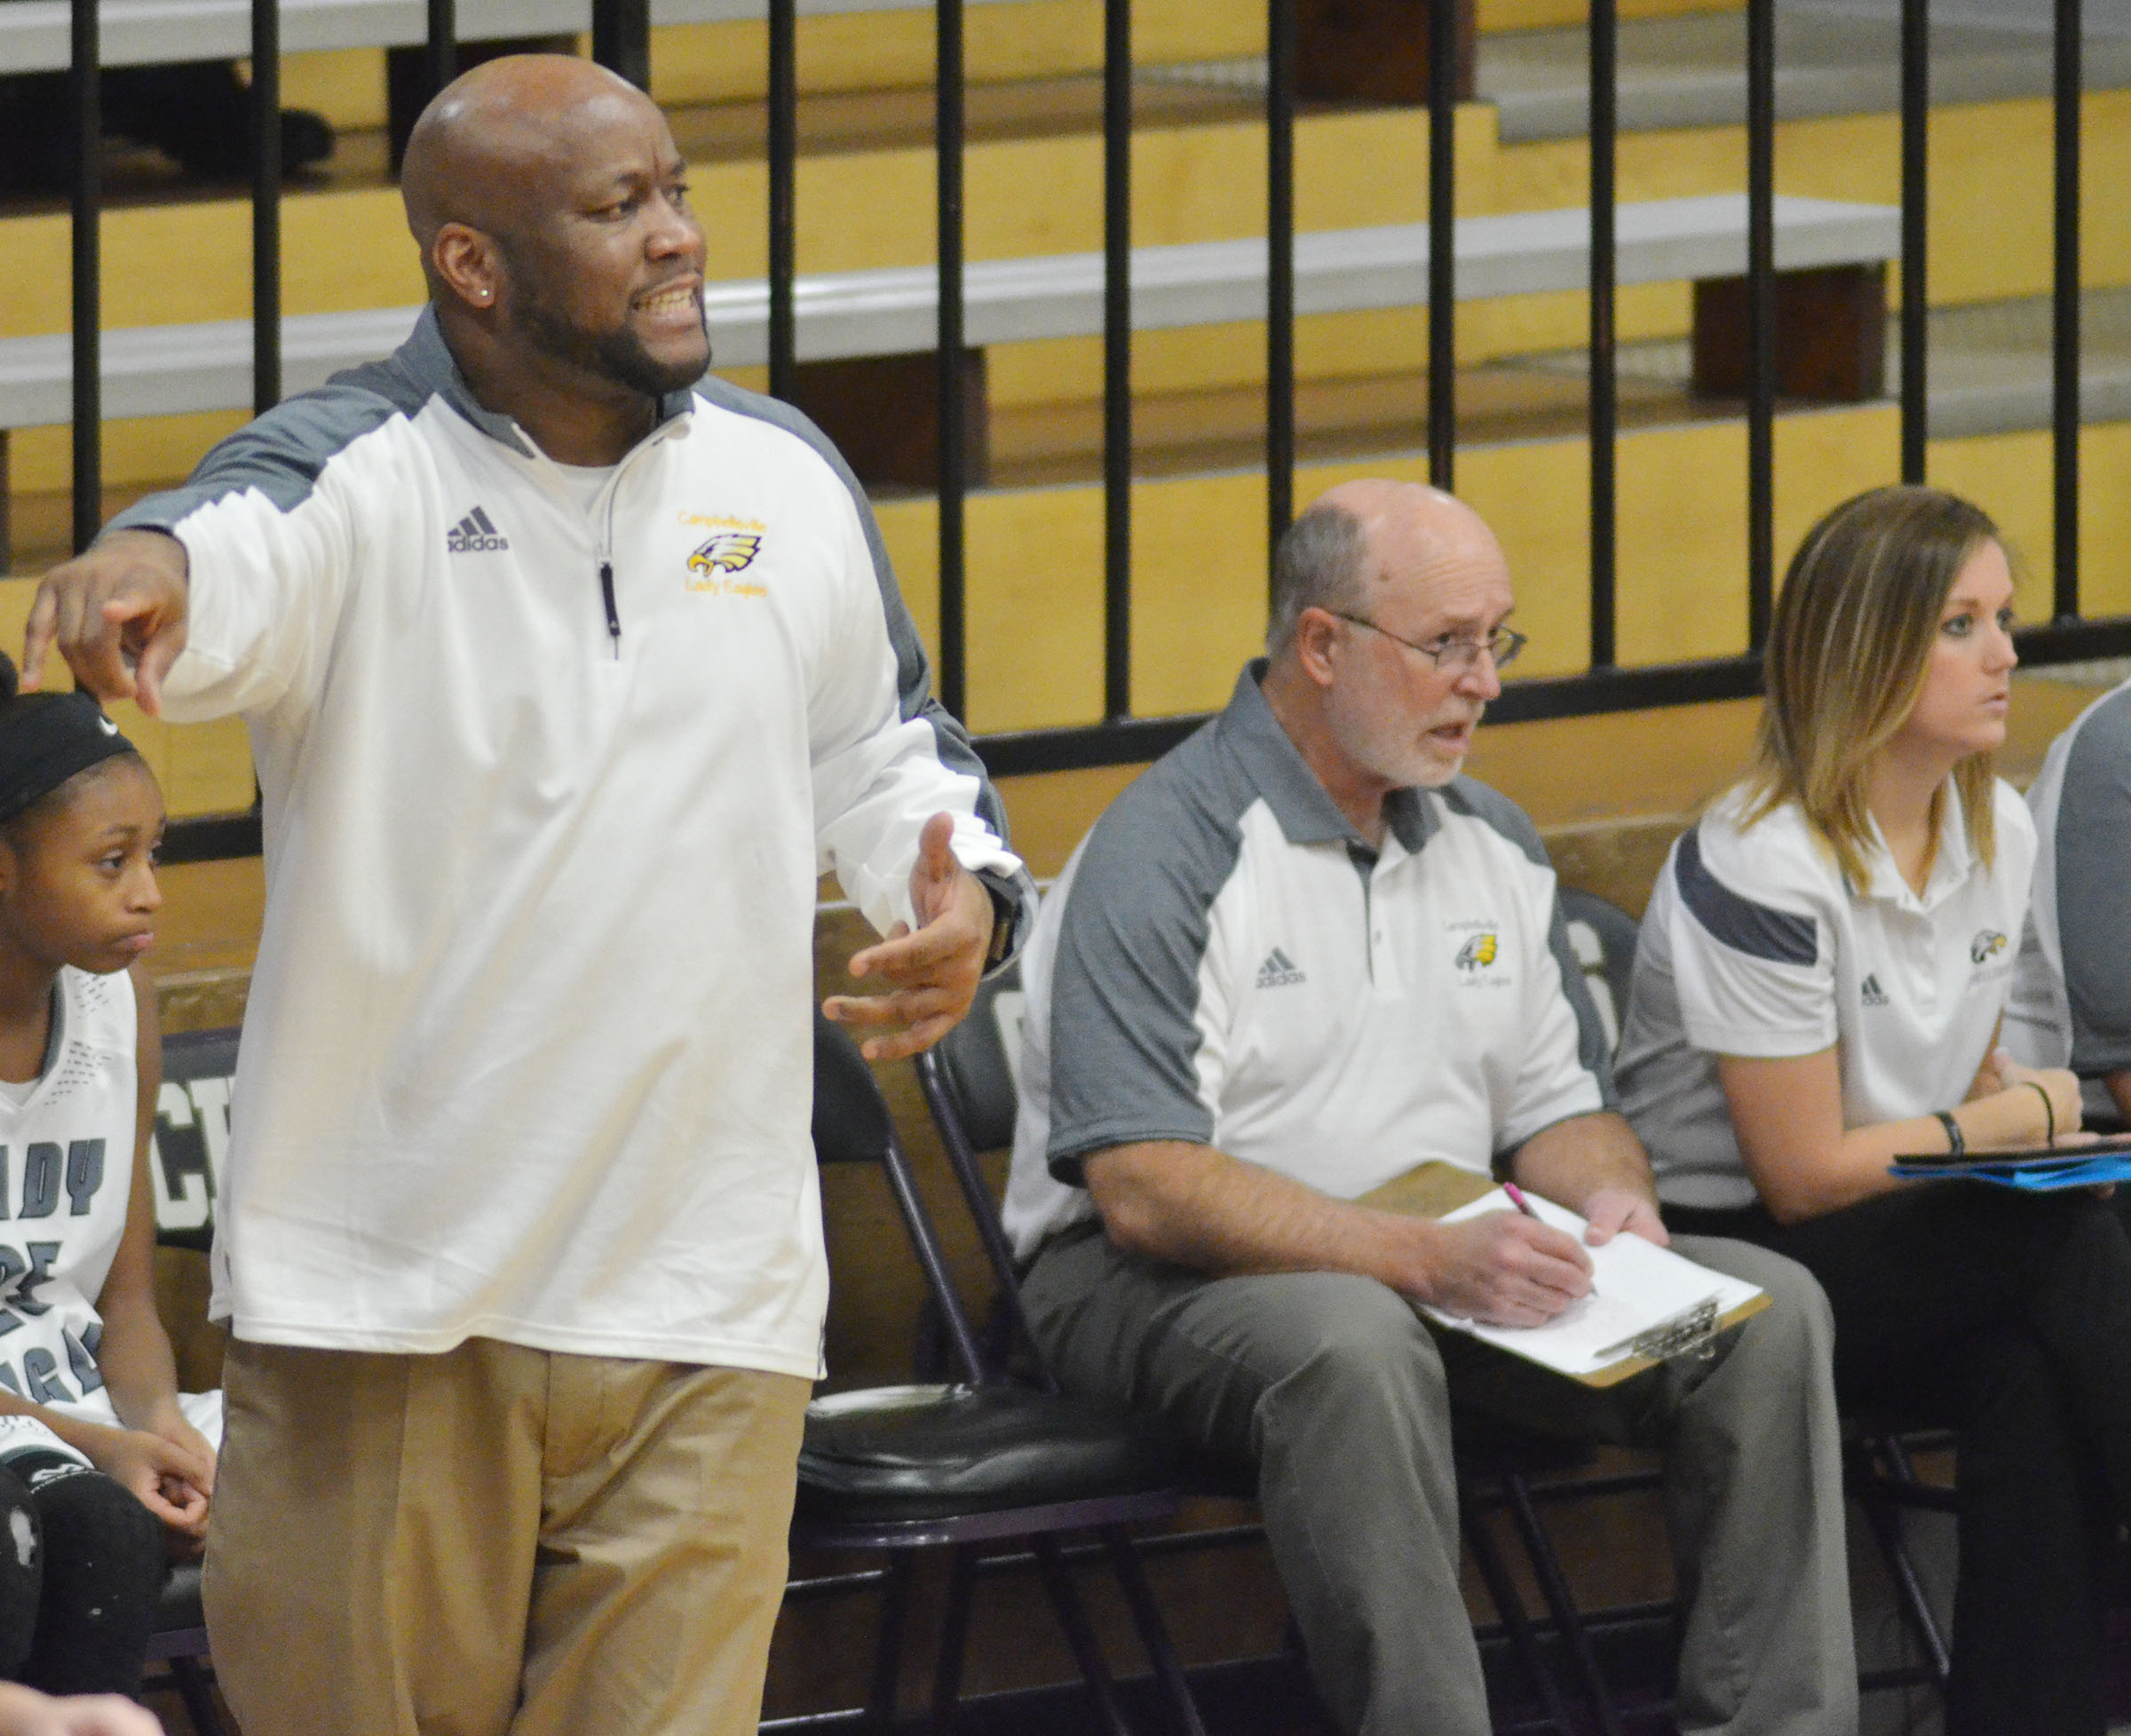 Campbellsville High School girls' basketball head coach Anthony Epps has been named the 2016-2017 5th region Coach of the Year.